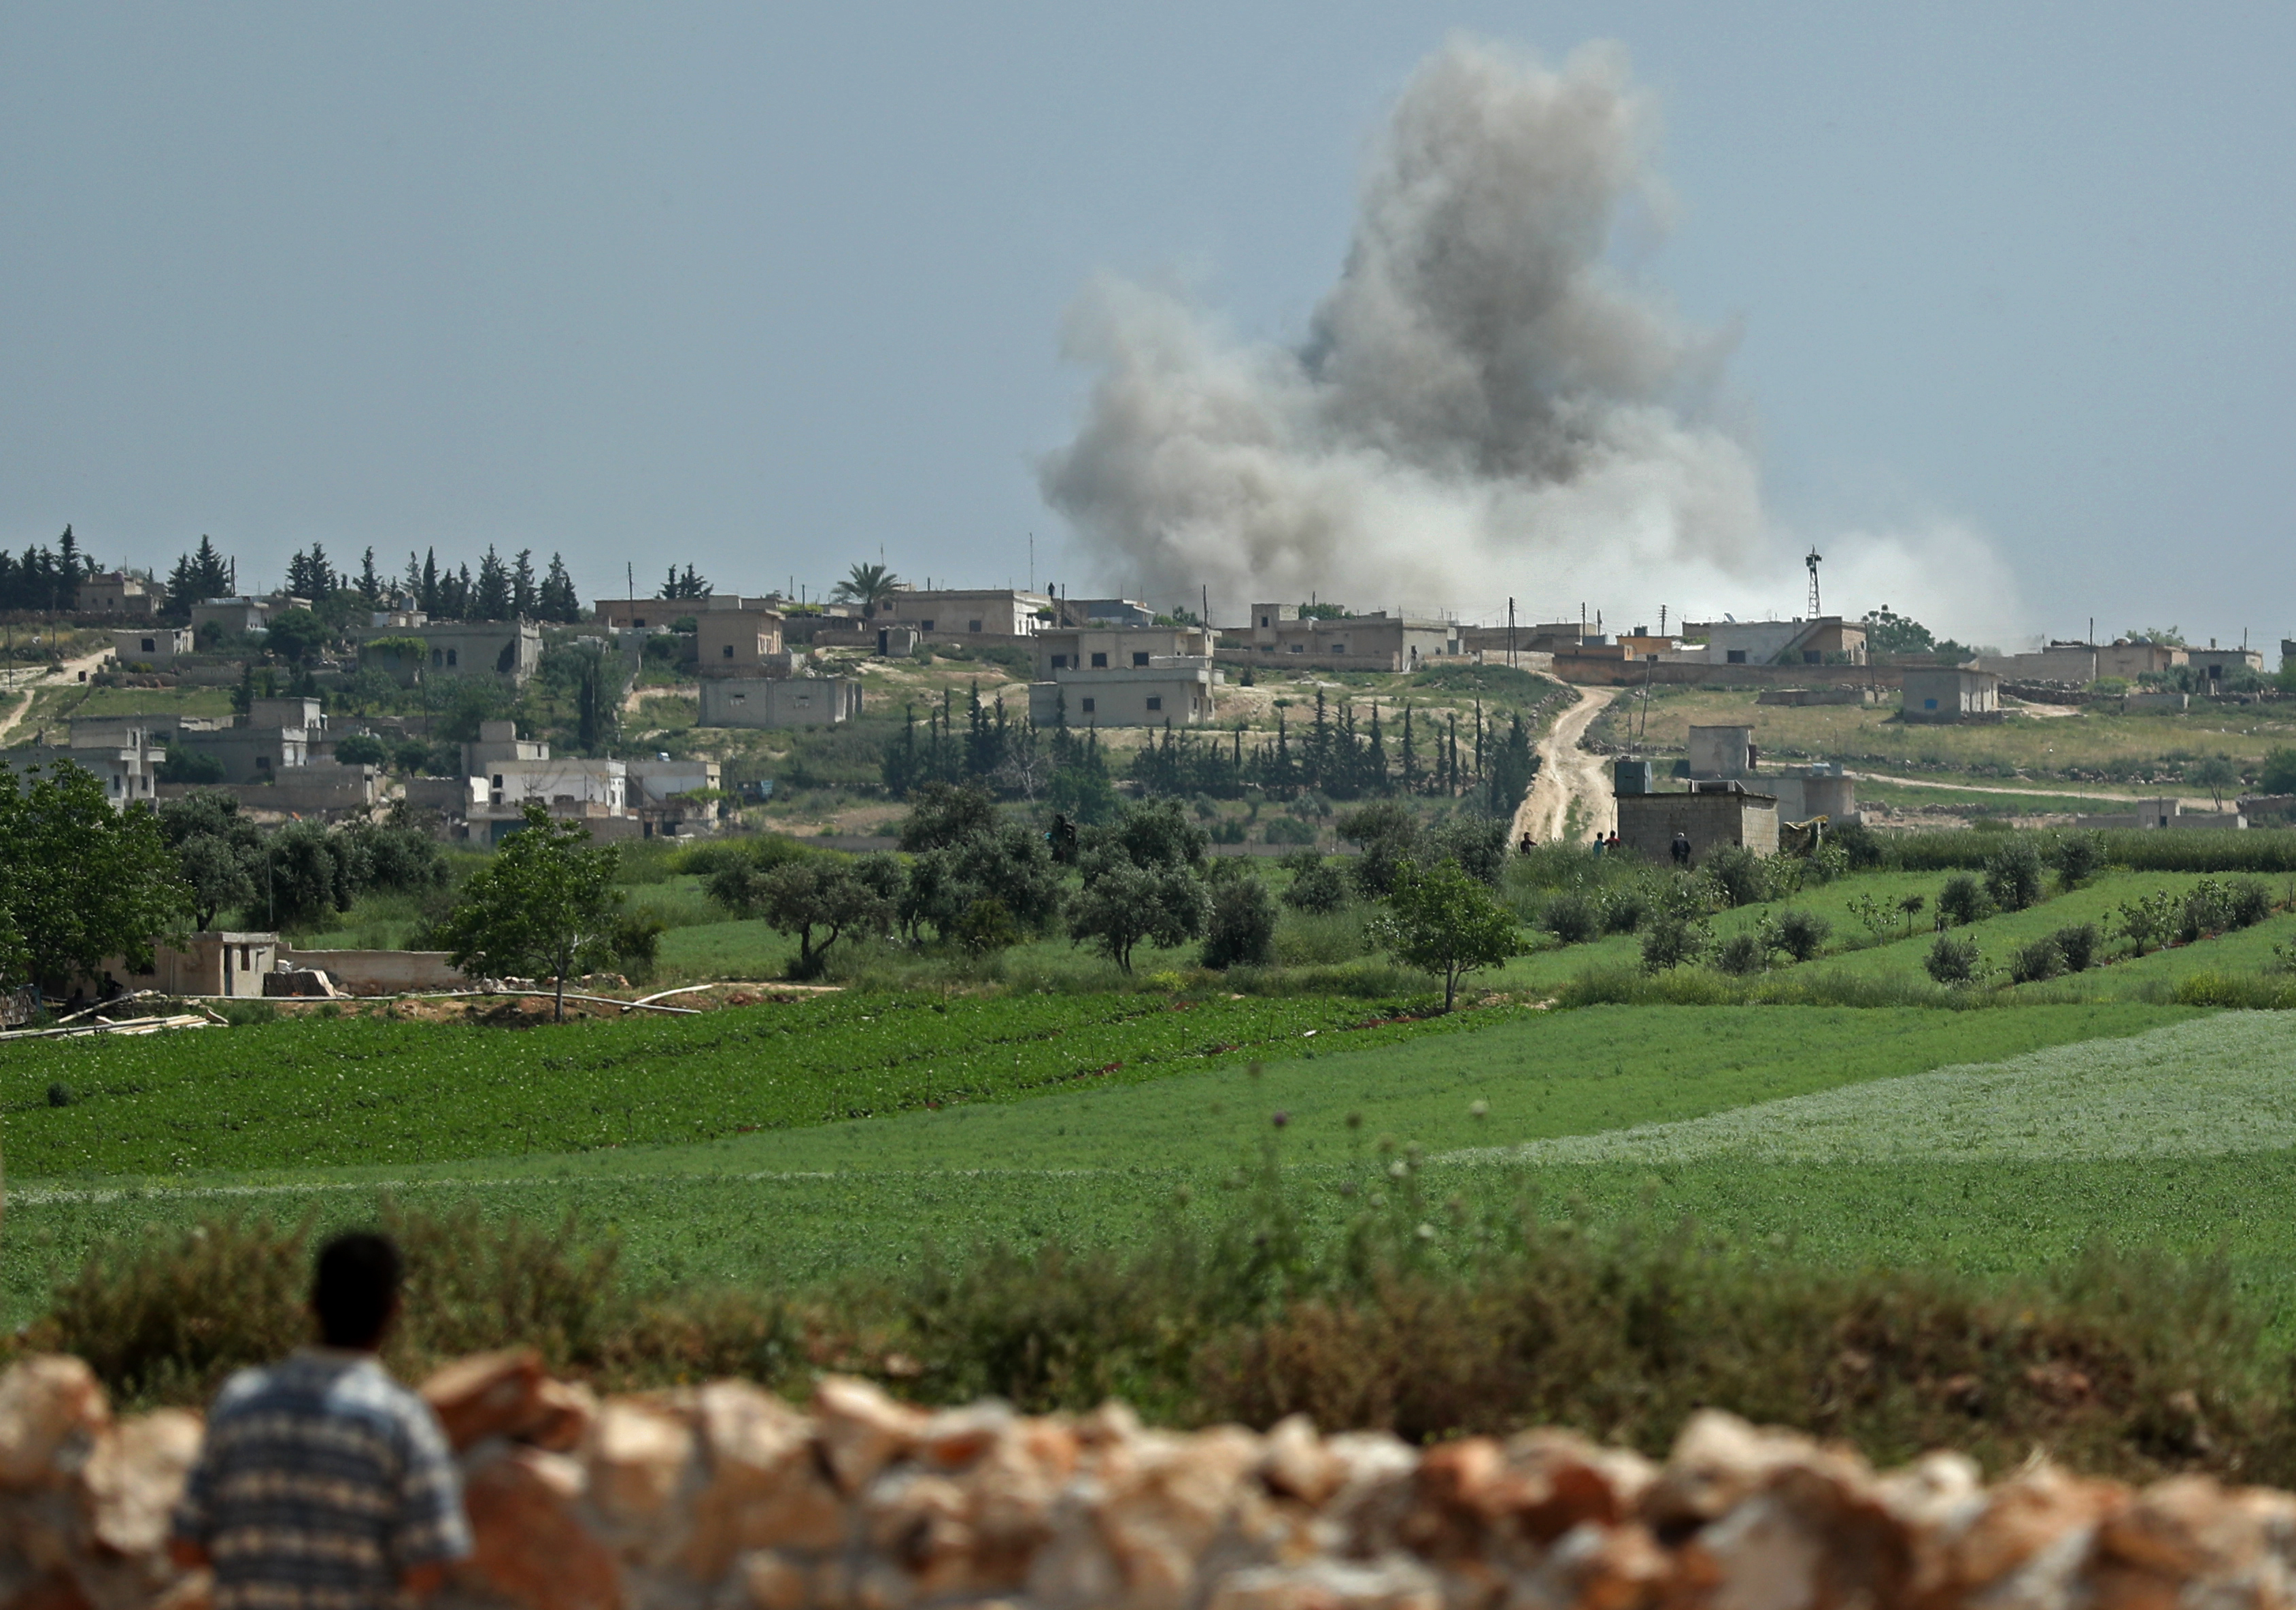 Smoke billows after reported shelling on the Syrian village of Kafr Ein in the southern countryside of the jihadist-held Idlib province, Syria, May 2, 2019.